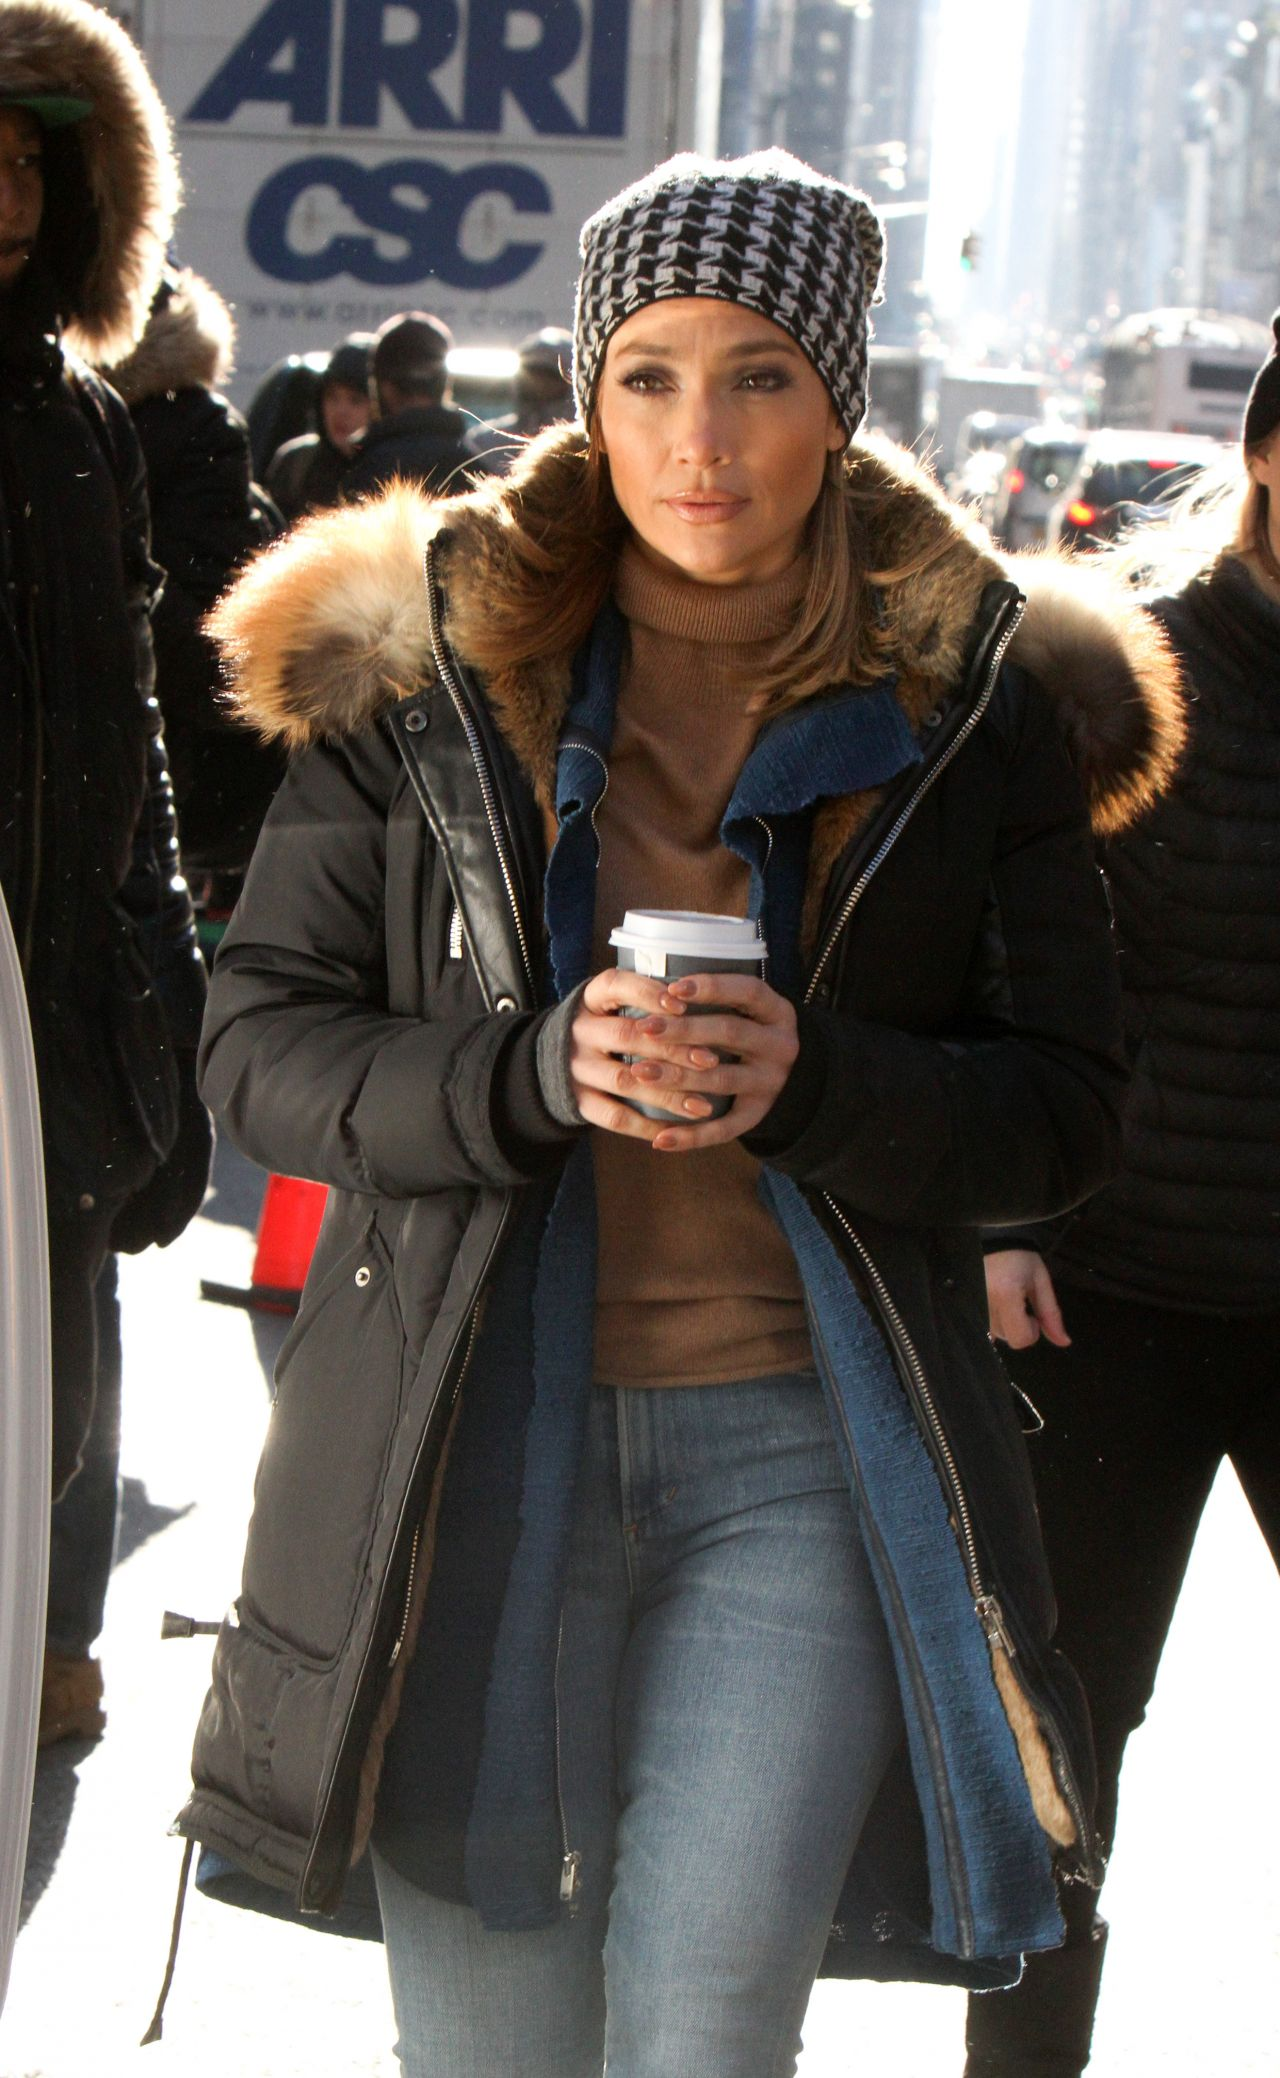 http://celebmafia.com/wp-content/uploads/2017/12/jennifer-lopez-vanessa-hudgens-get-coffee-on-set-of-filming-second-act-in-nyc-5.jpg